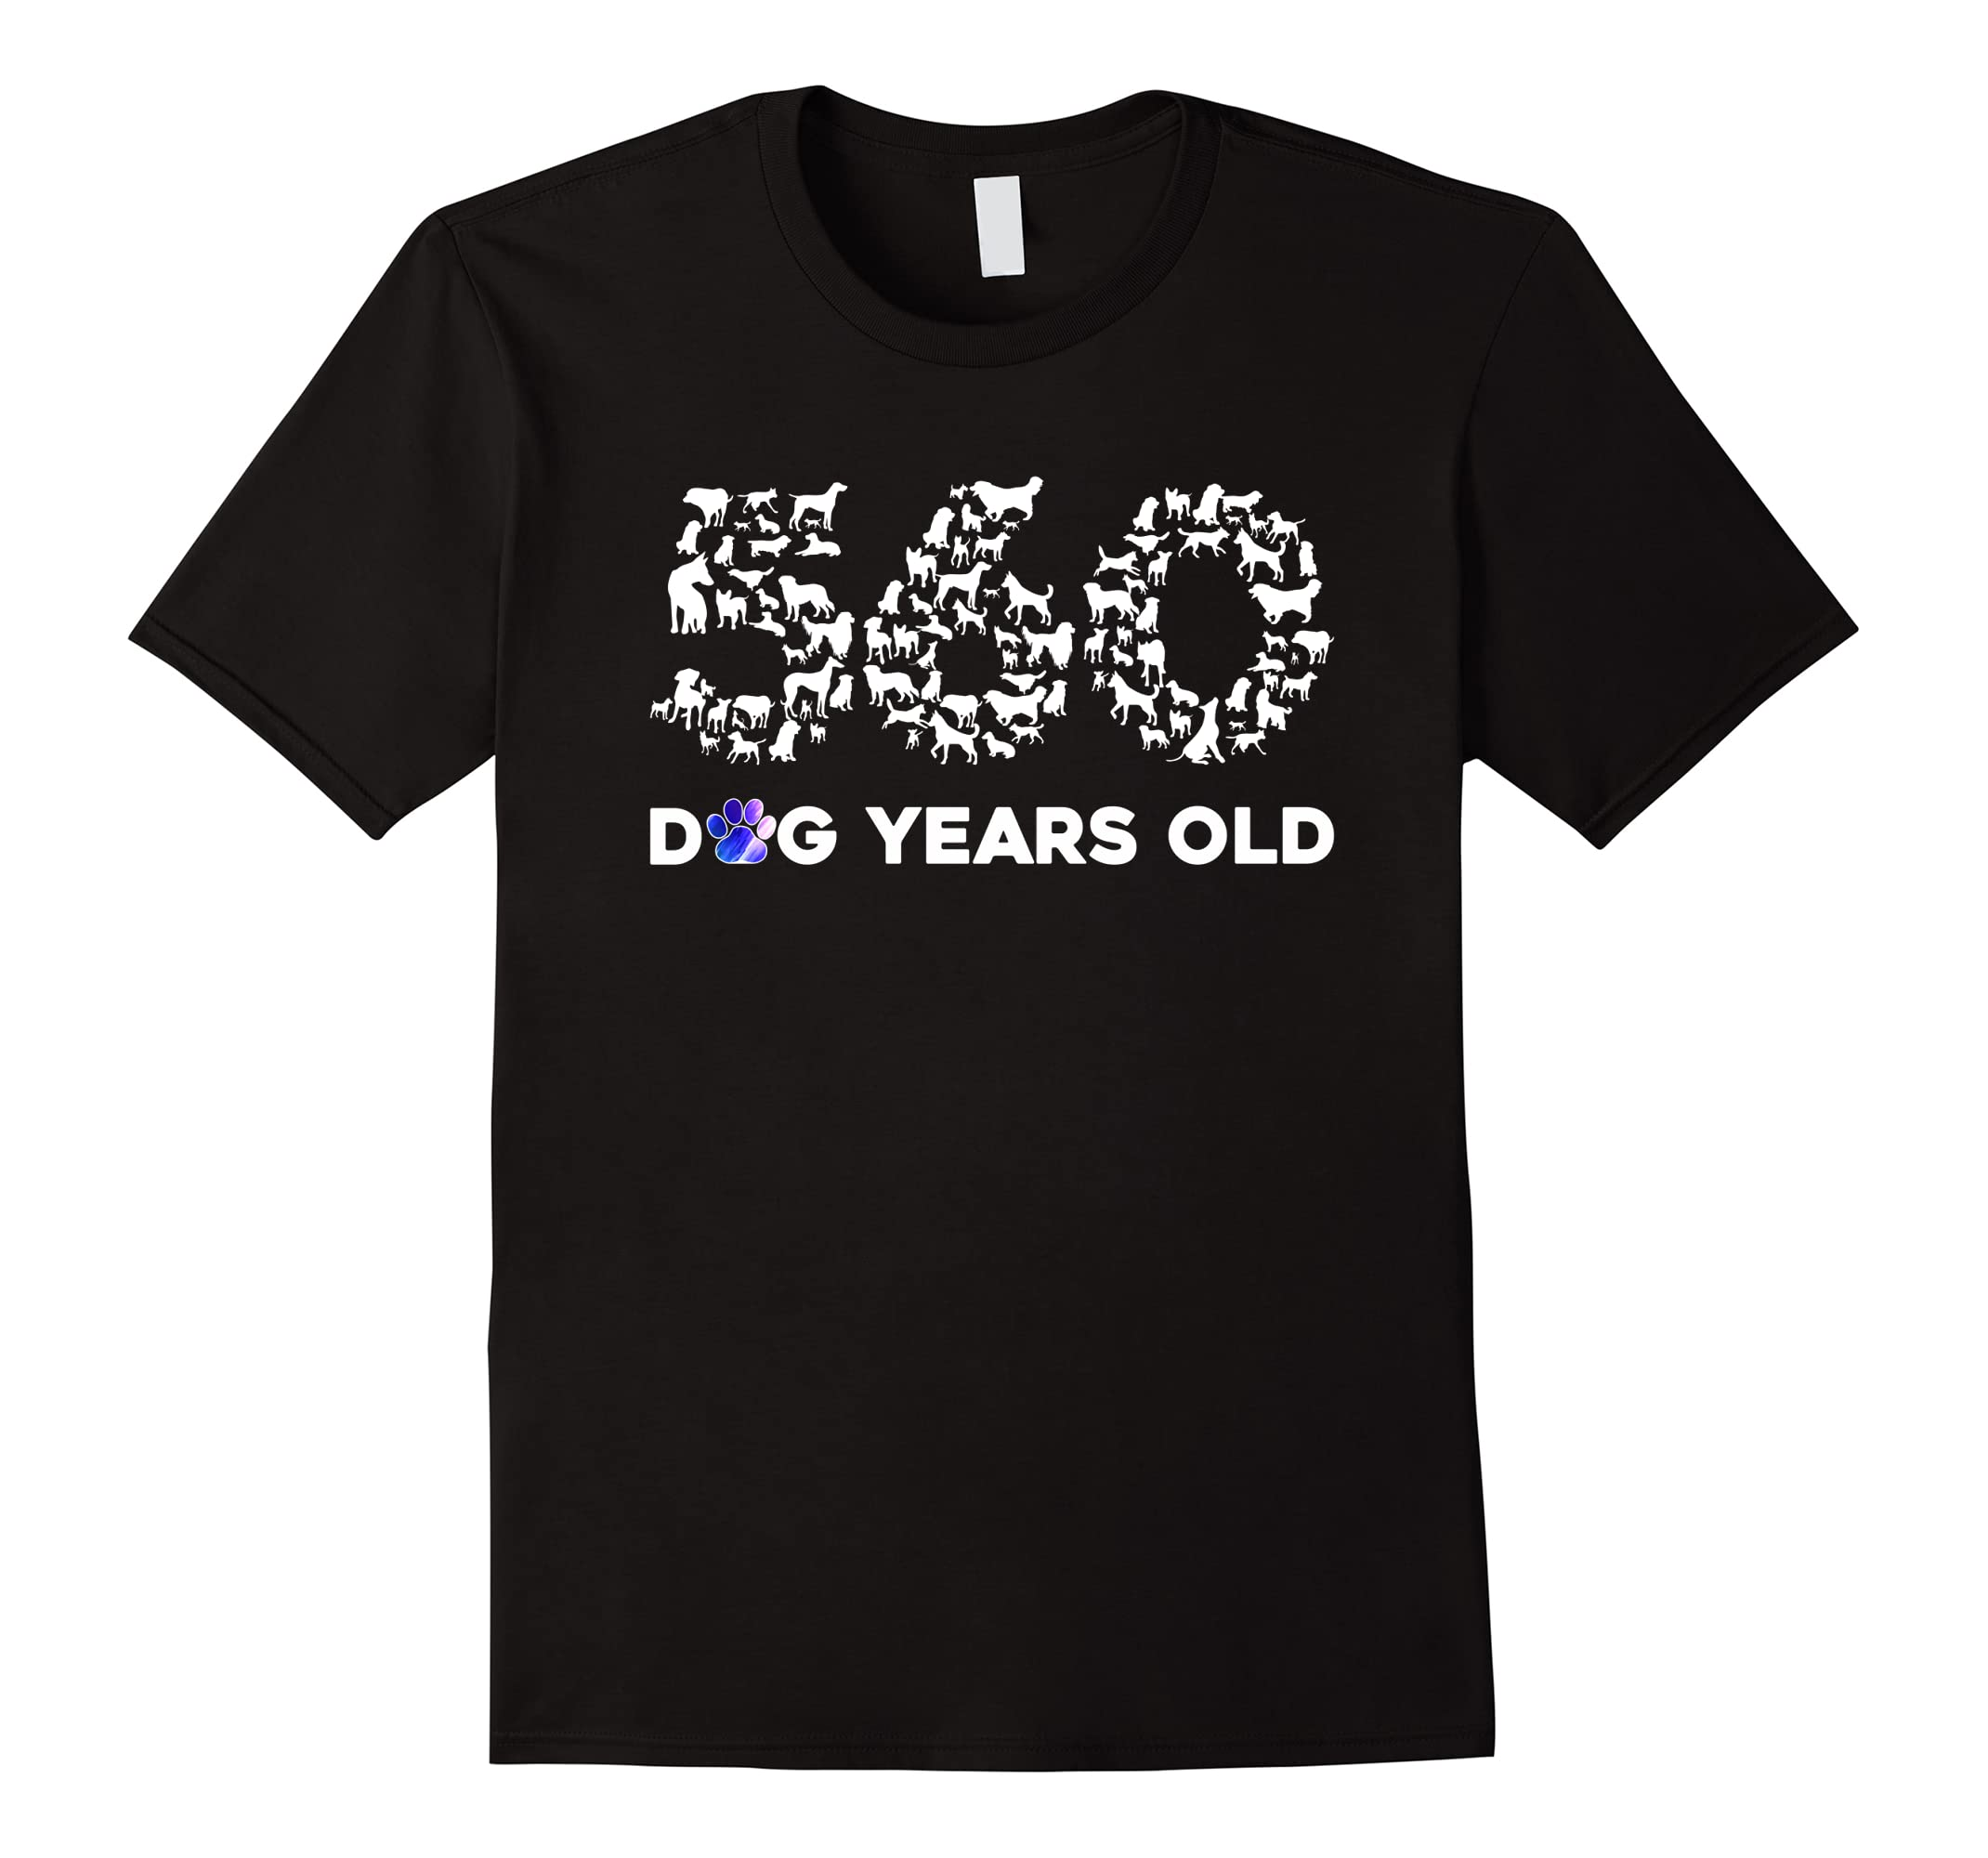 80th Birthday T Shirt Funny 560 Dog Years Old Gift Tees RT